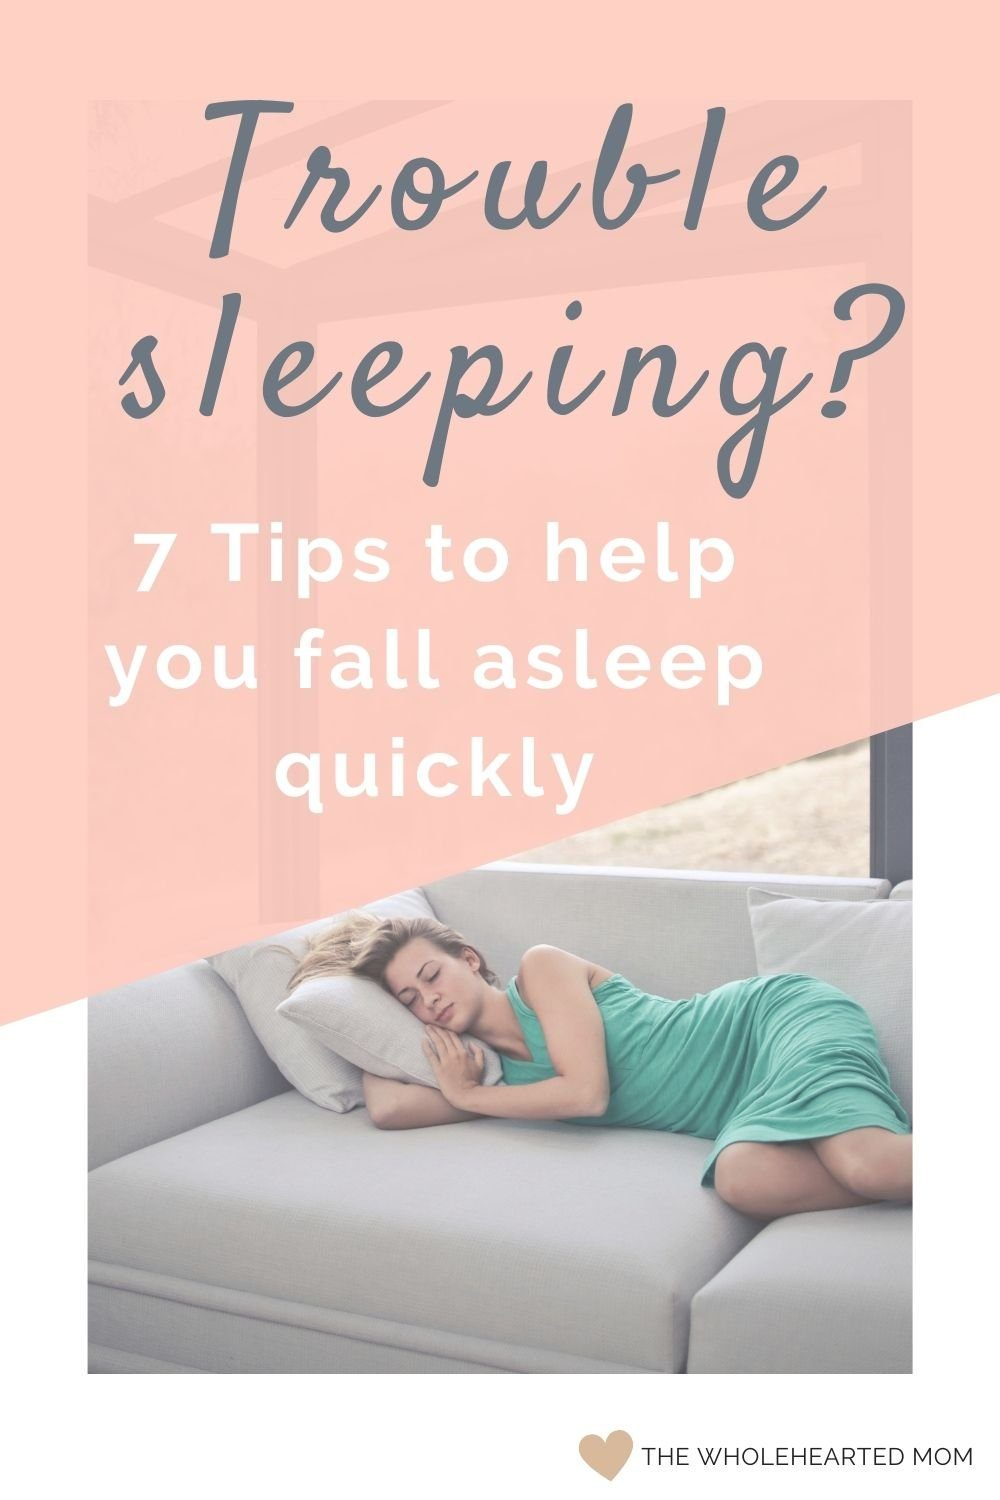 Trouble sleeping - learn how to fall asleep quickly